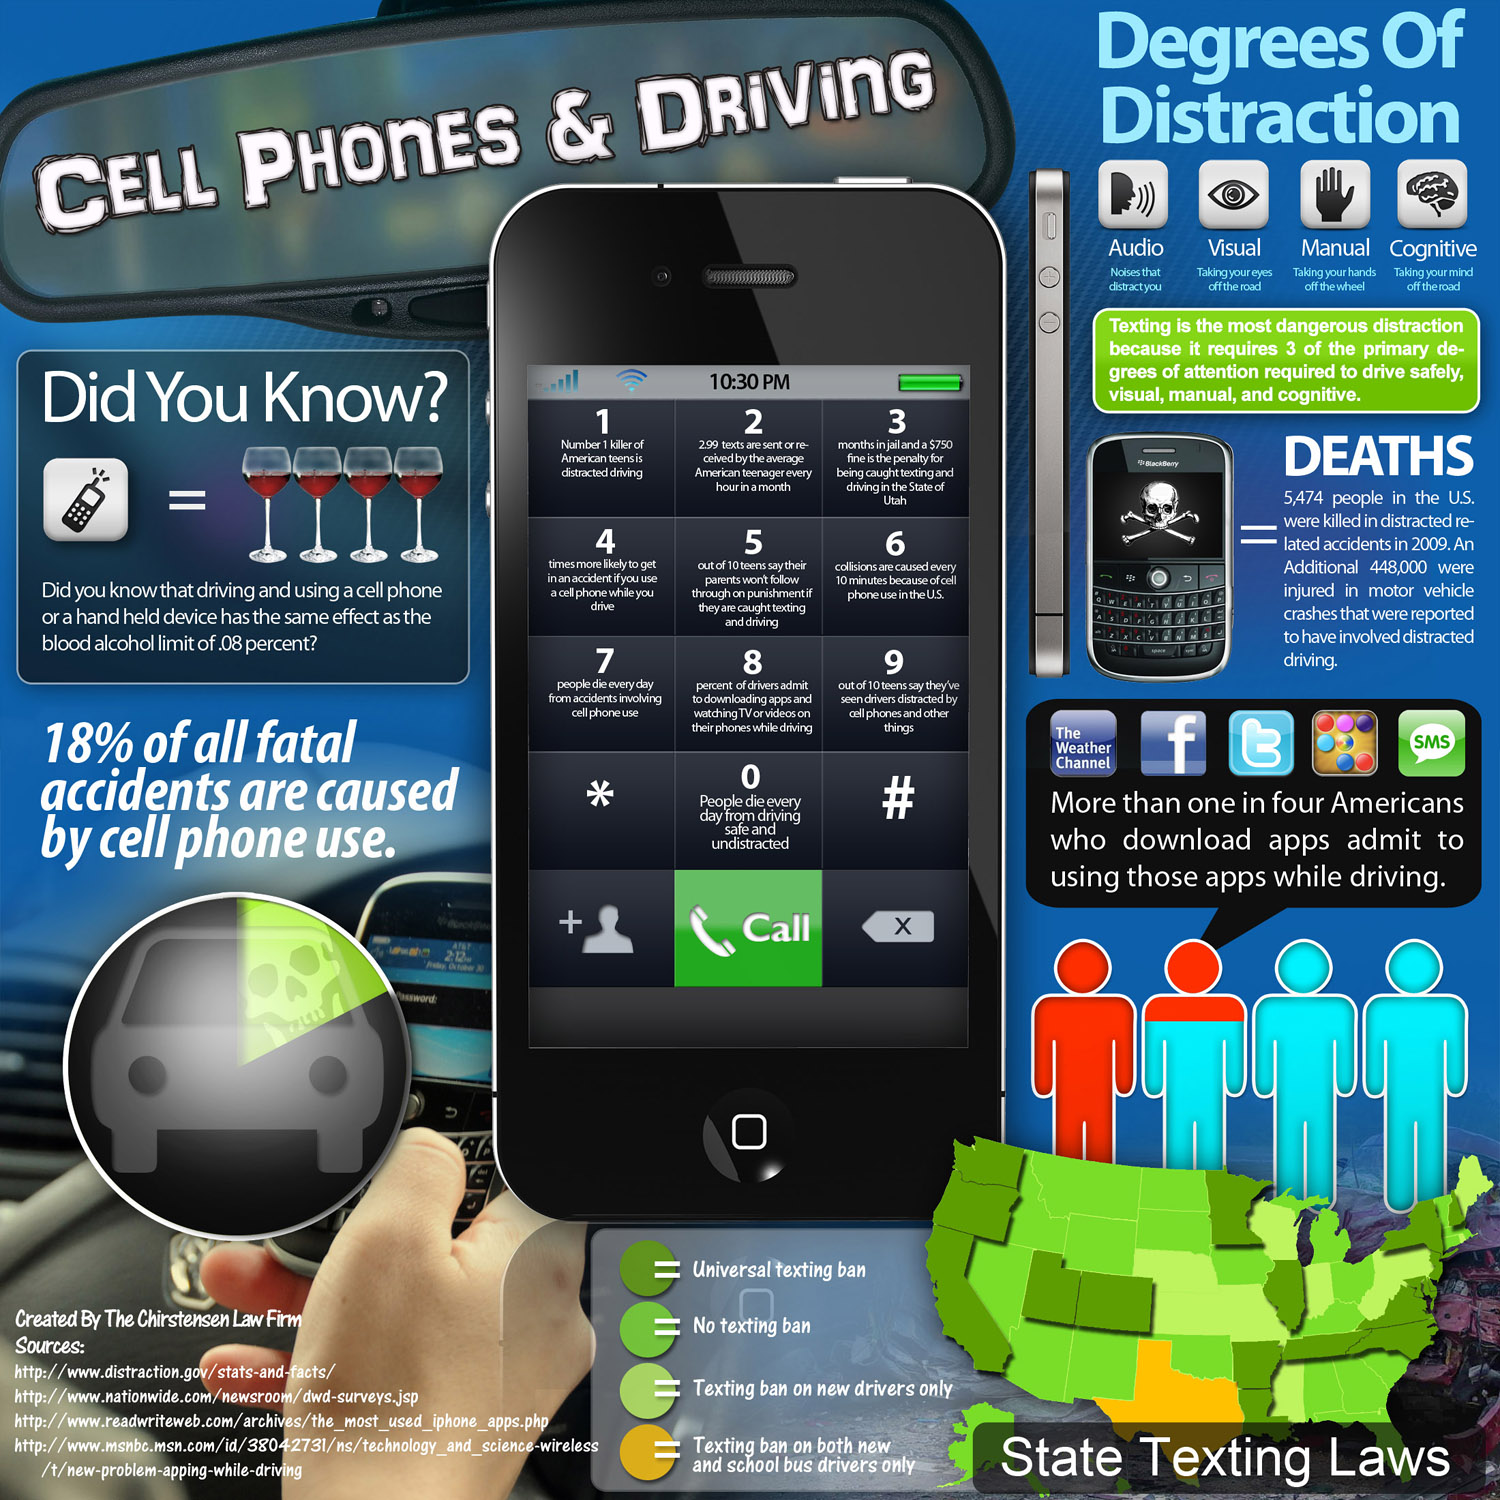 distracted-driving-info-graphic.jpg